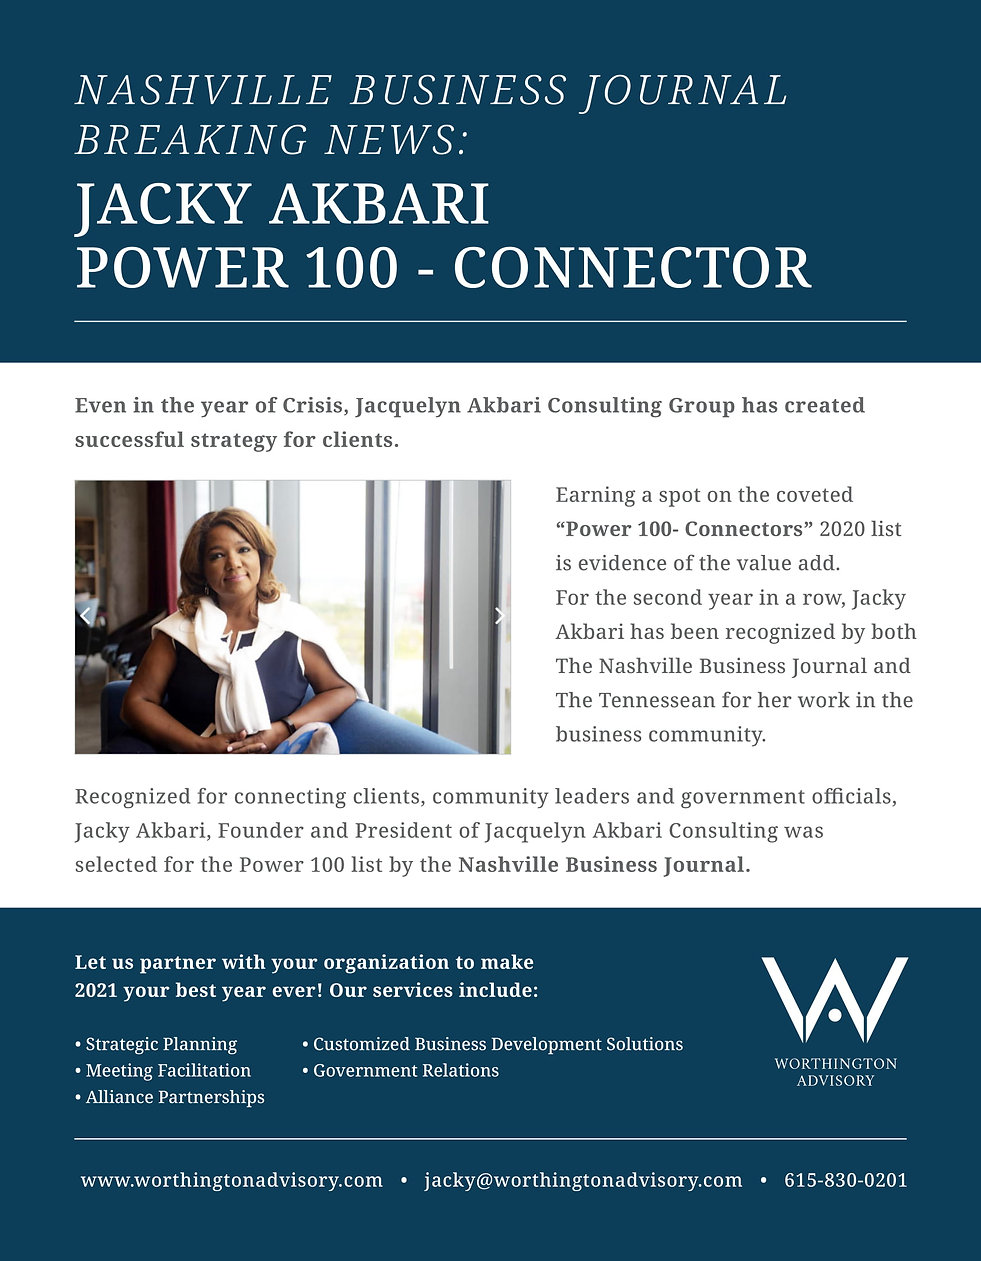 JackyAkbari_Power100_Flyers_3versions-2.